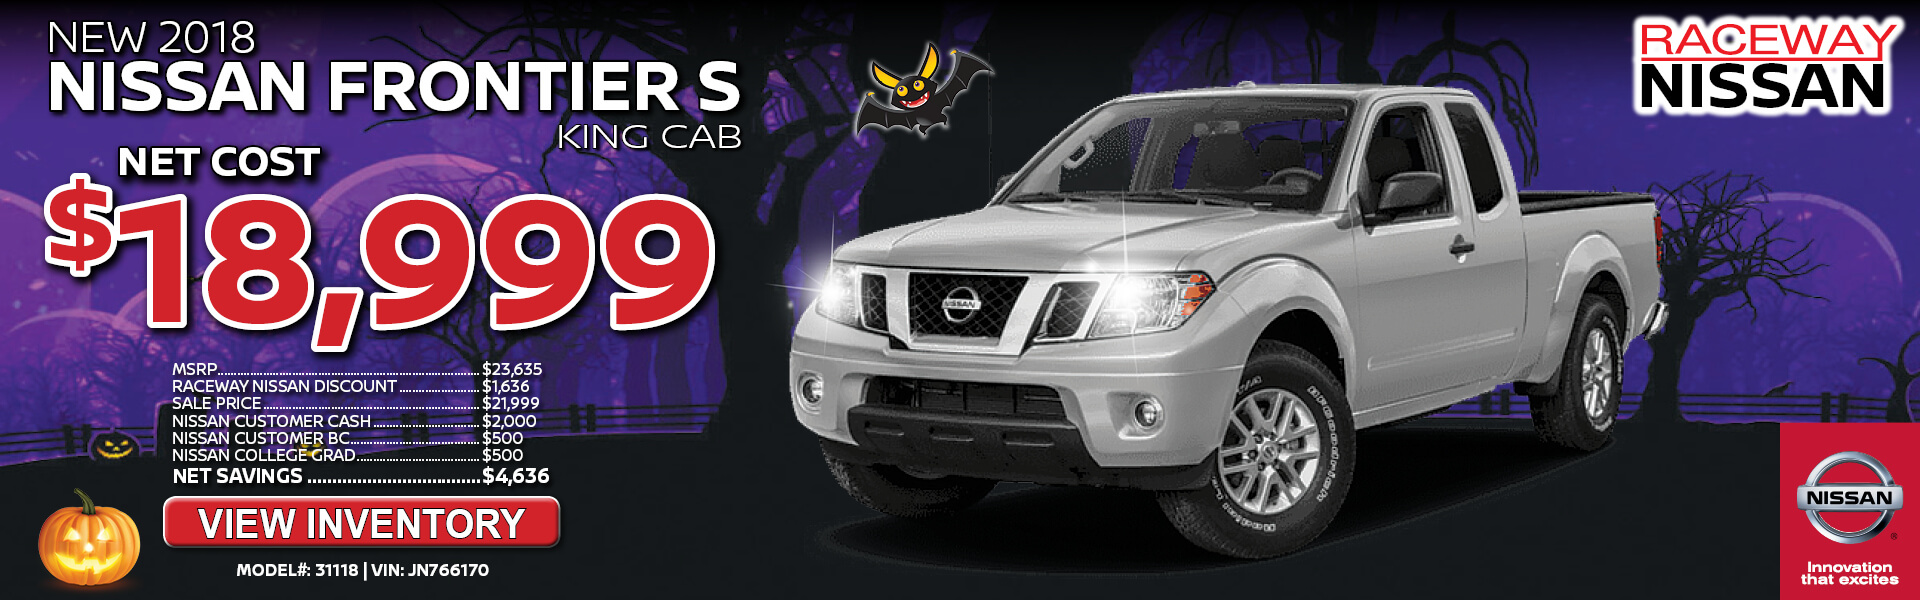 Nissan Frontier $18,999 Purchase